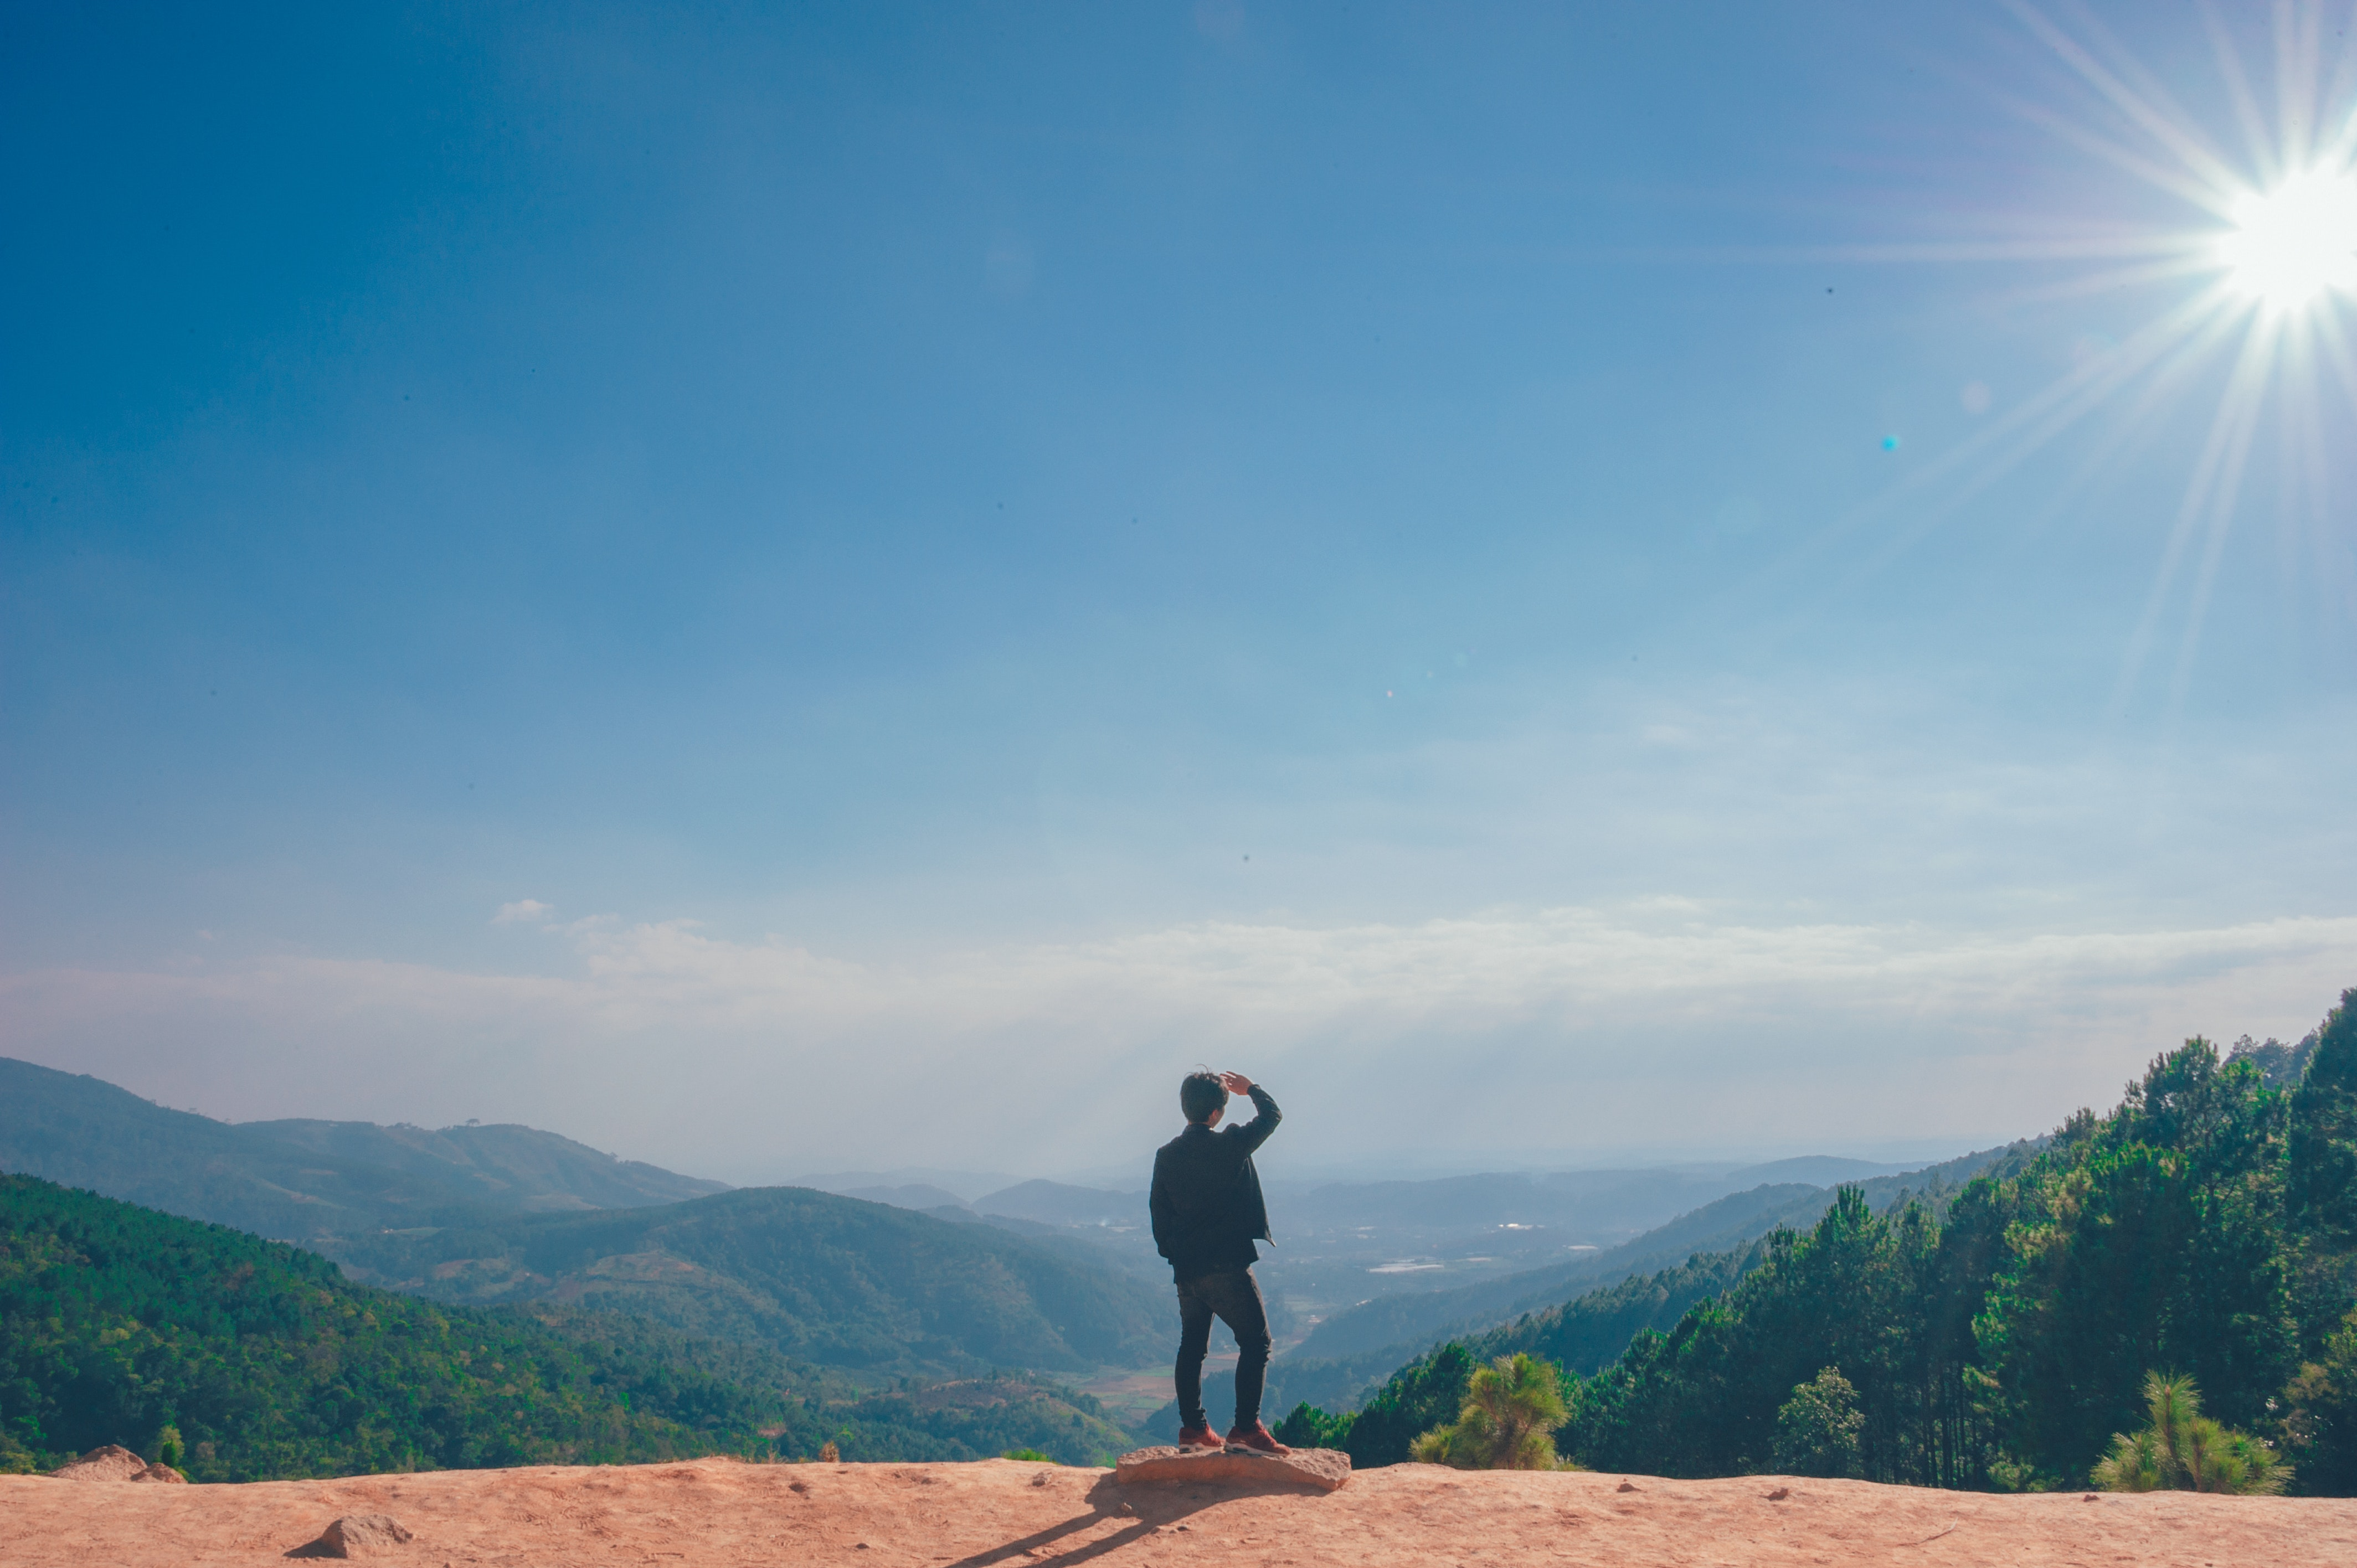 Man Looking on the Cliff, Clouds, Person, Sunrays, Sunlight, HQ Photo